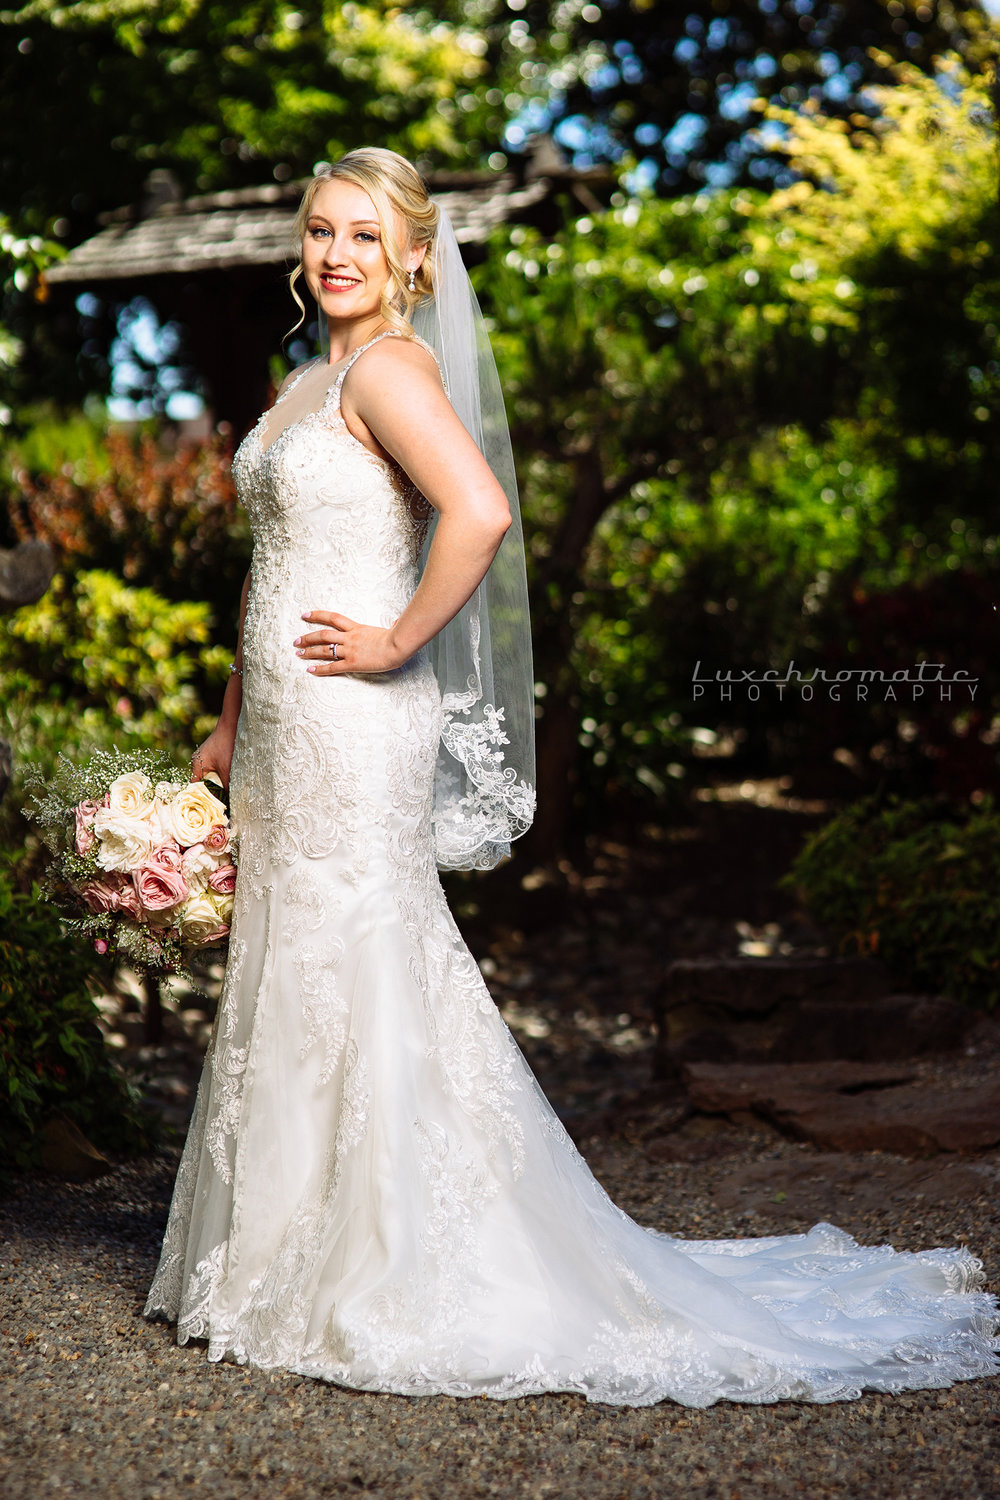 052017_Natalie_Travis-1282-San-Francisco-Bay-Area-Fremont-East-Bay-Wedding-Church-Hotel-Silicon-Valley-Bride-Gown-Dress-Groom-Luxchromatic-Portrait-Sony-Alpha-a7Rii-Interfit-Profoto-Photographer-Photography.jpg